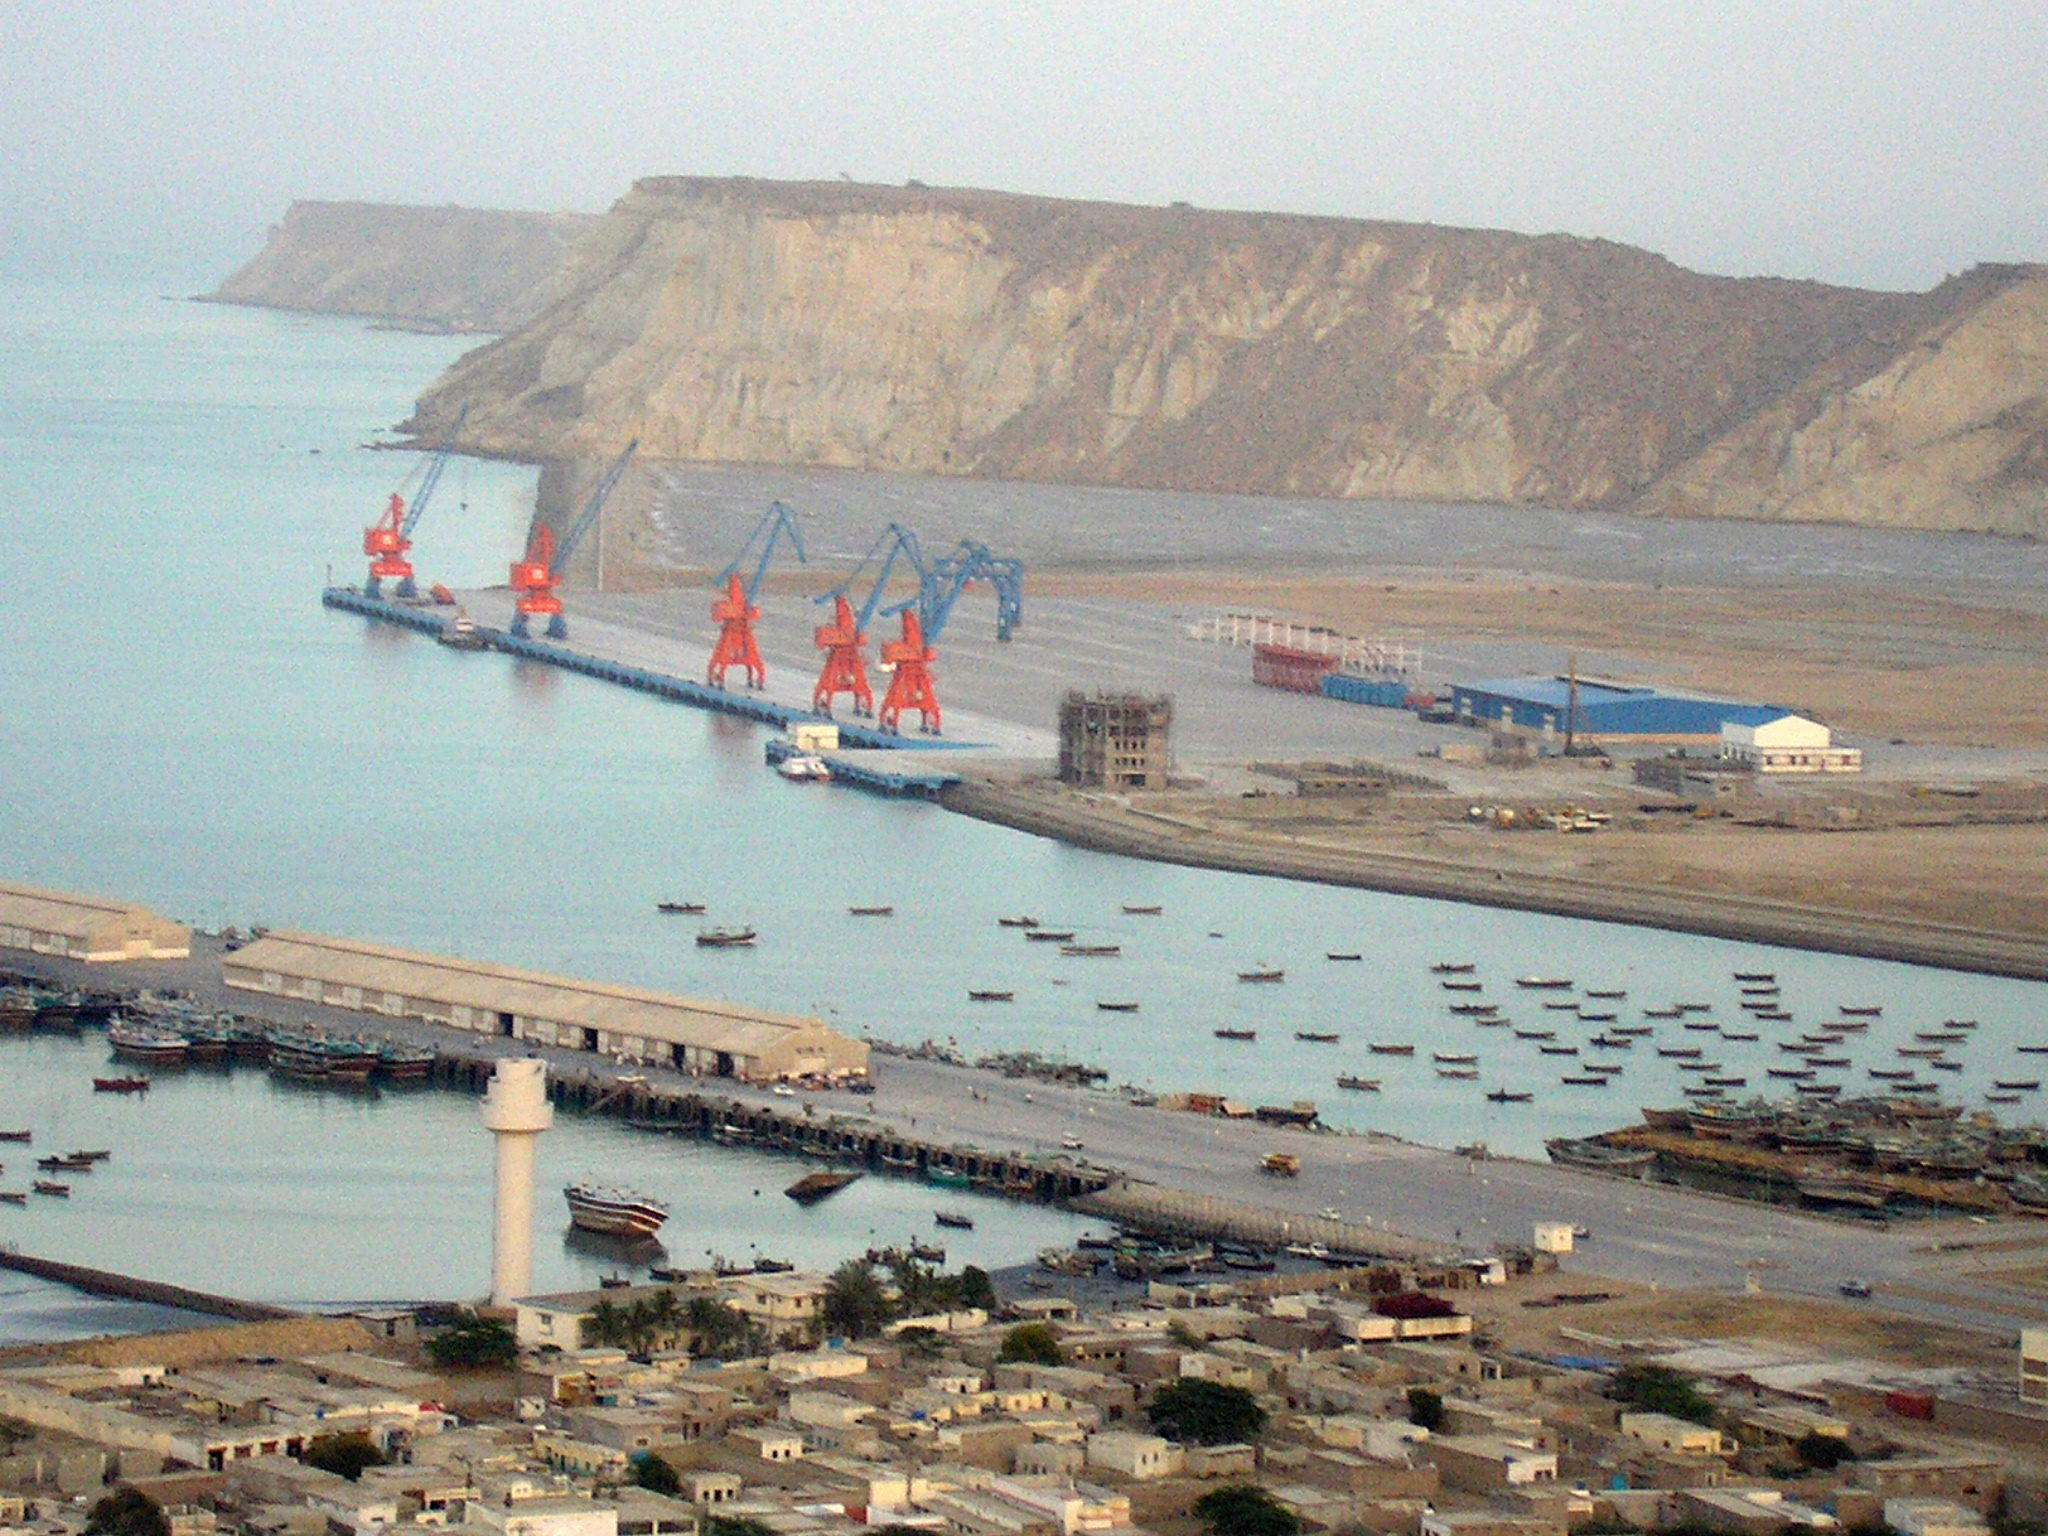 Pakistan's Gwadar Port is one of the major projects of the China-Pakistan Economic Corridor, which is linked to the Belt and Road Initiative. (Image Credit: Paranda/Wikimedia Commons)